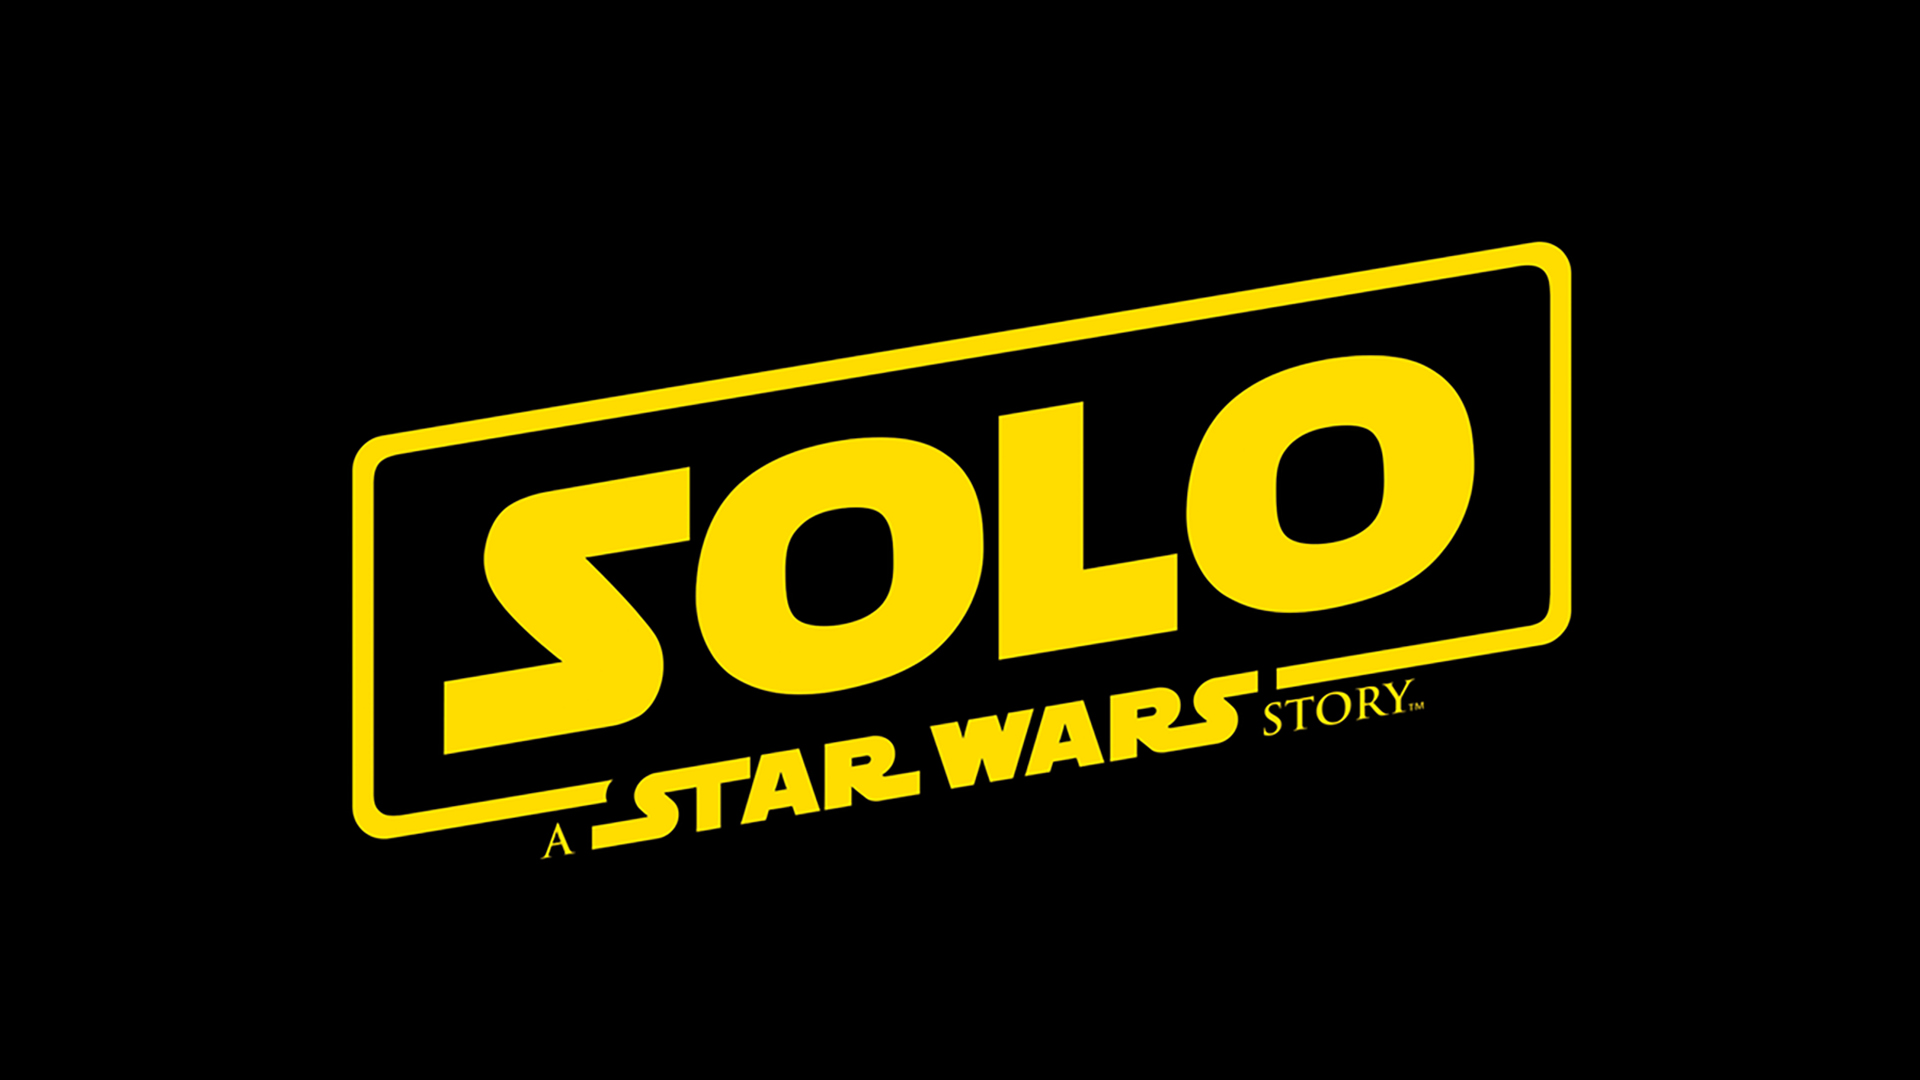 Now we know what Solo is all about (and at least it's not masturbatory) screenshot